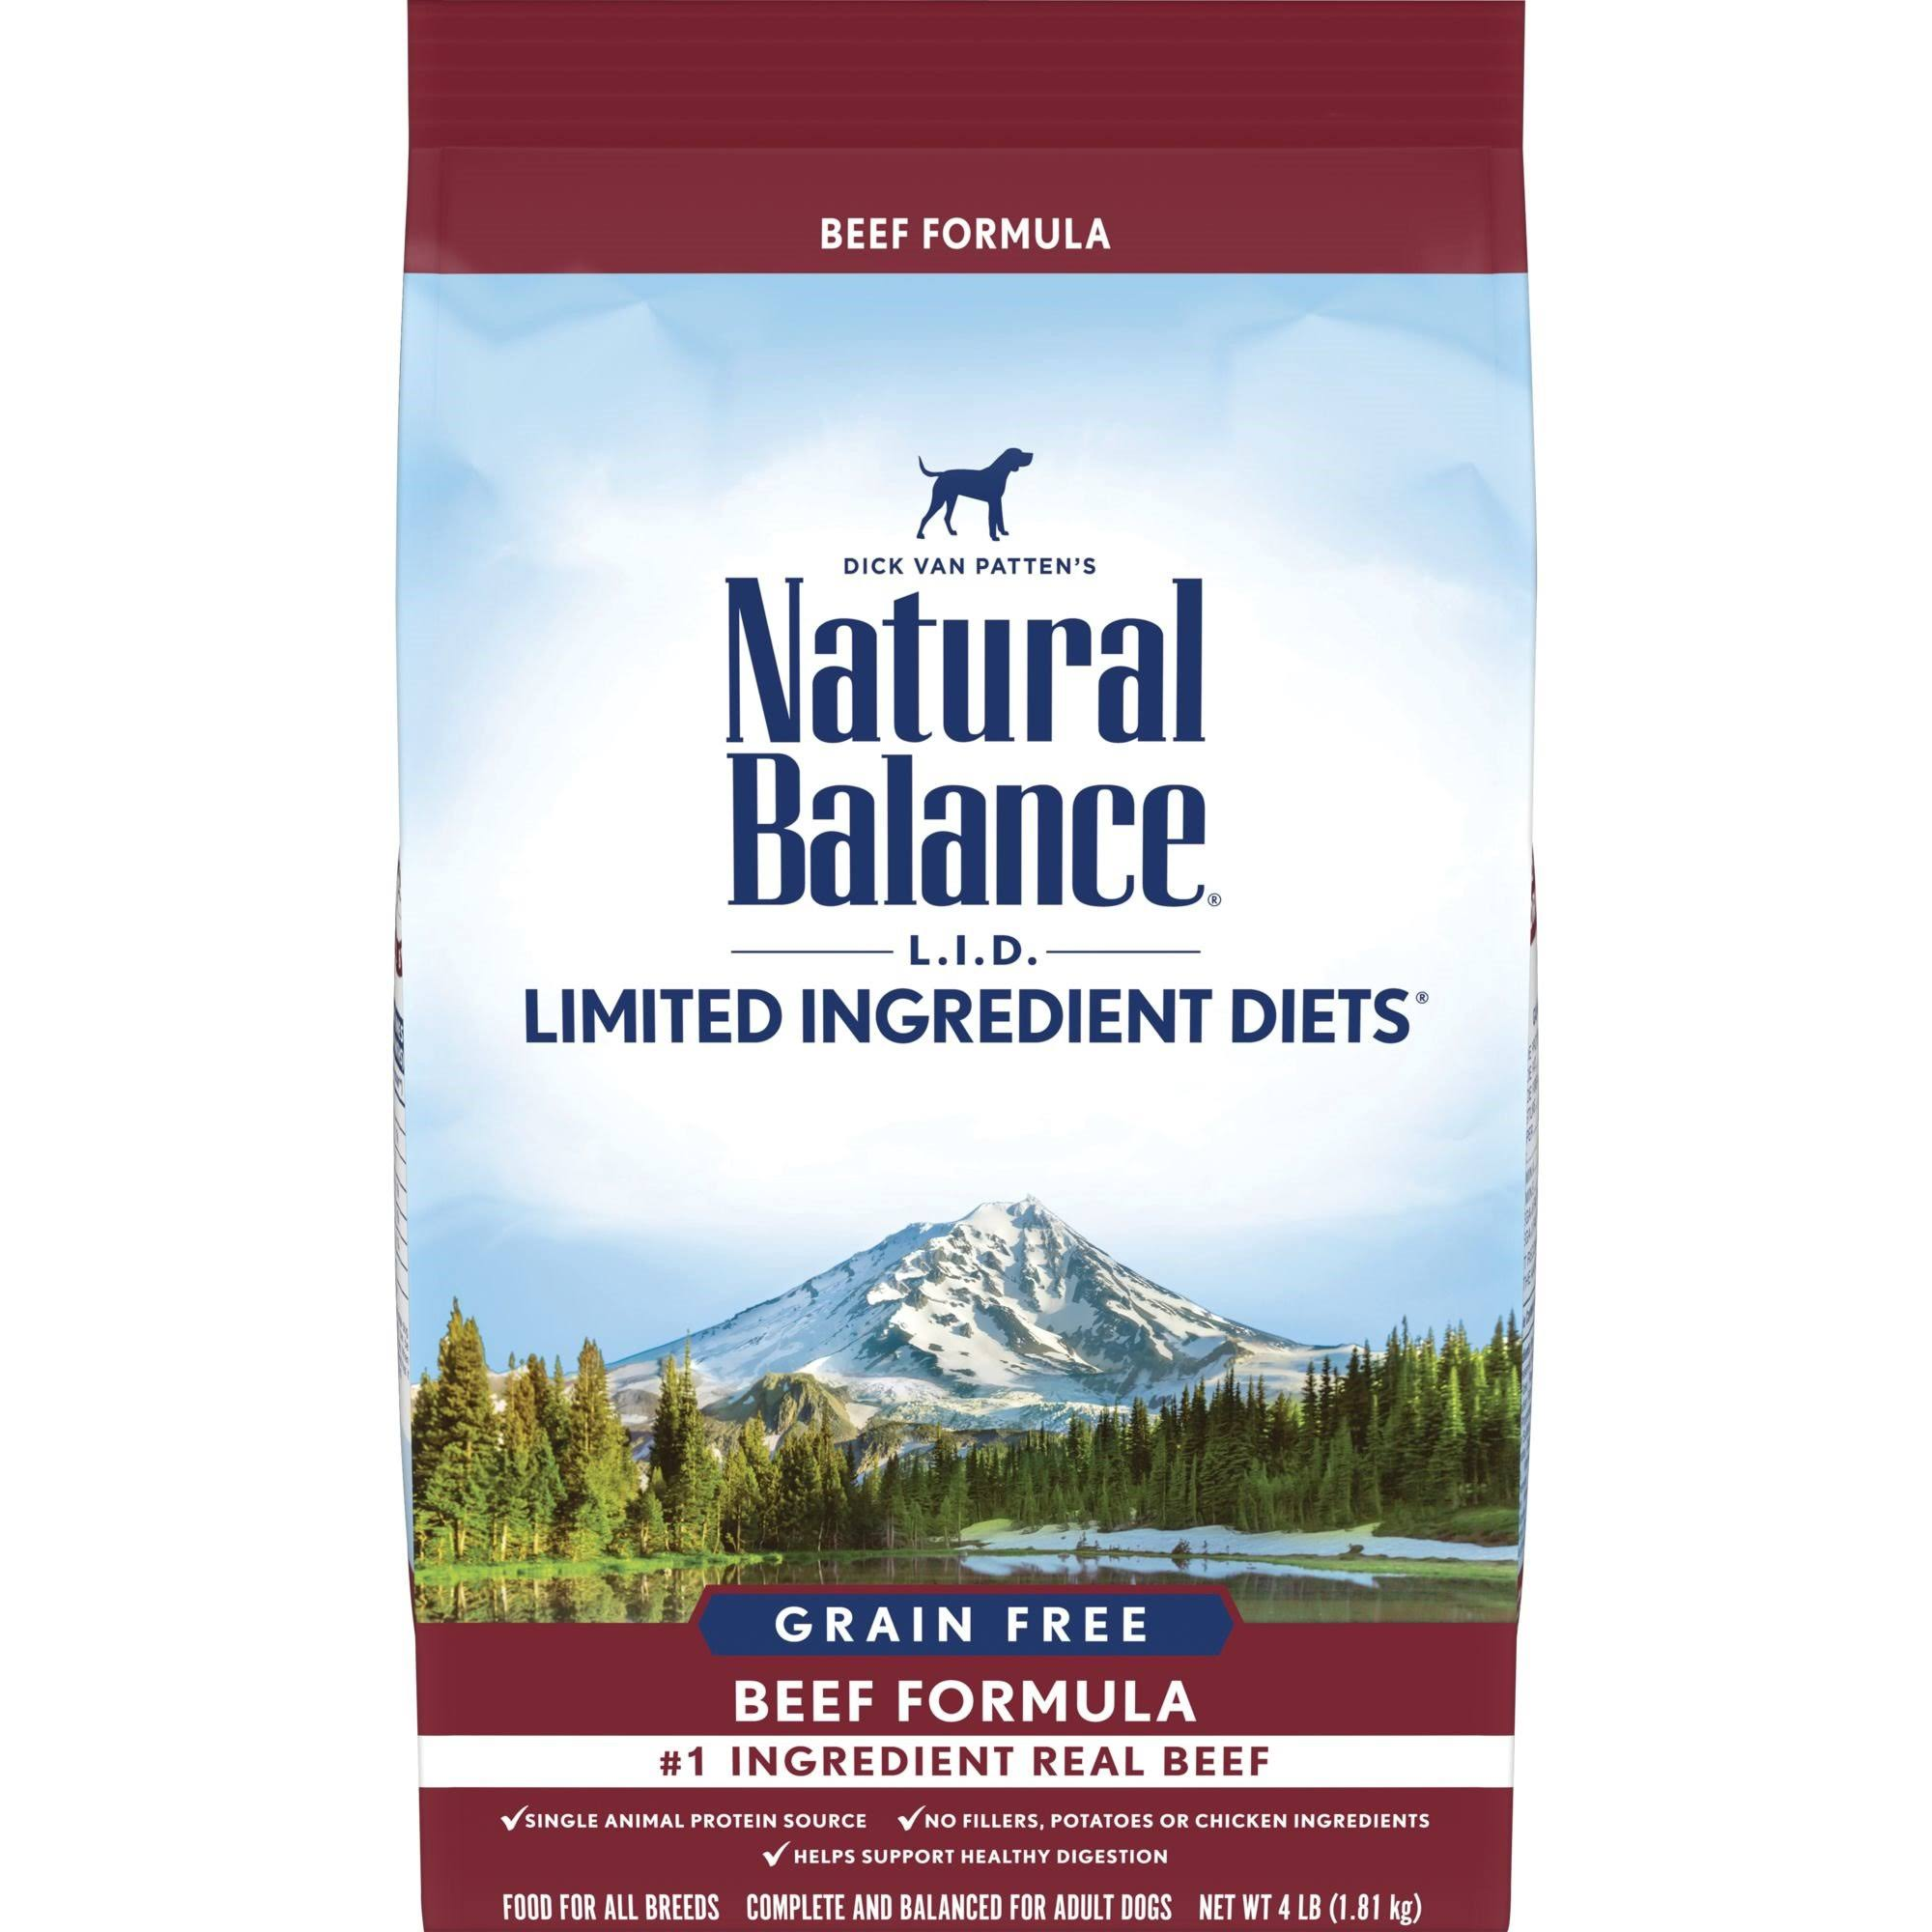 Natural Balance Limited Ingredient Diets High Protein Dry Dog Food - Beef Formula, 6 lbs